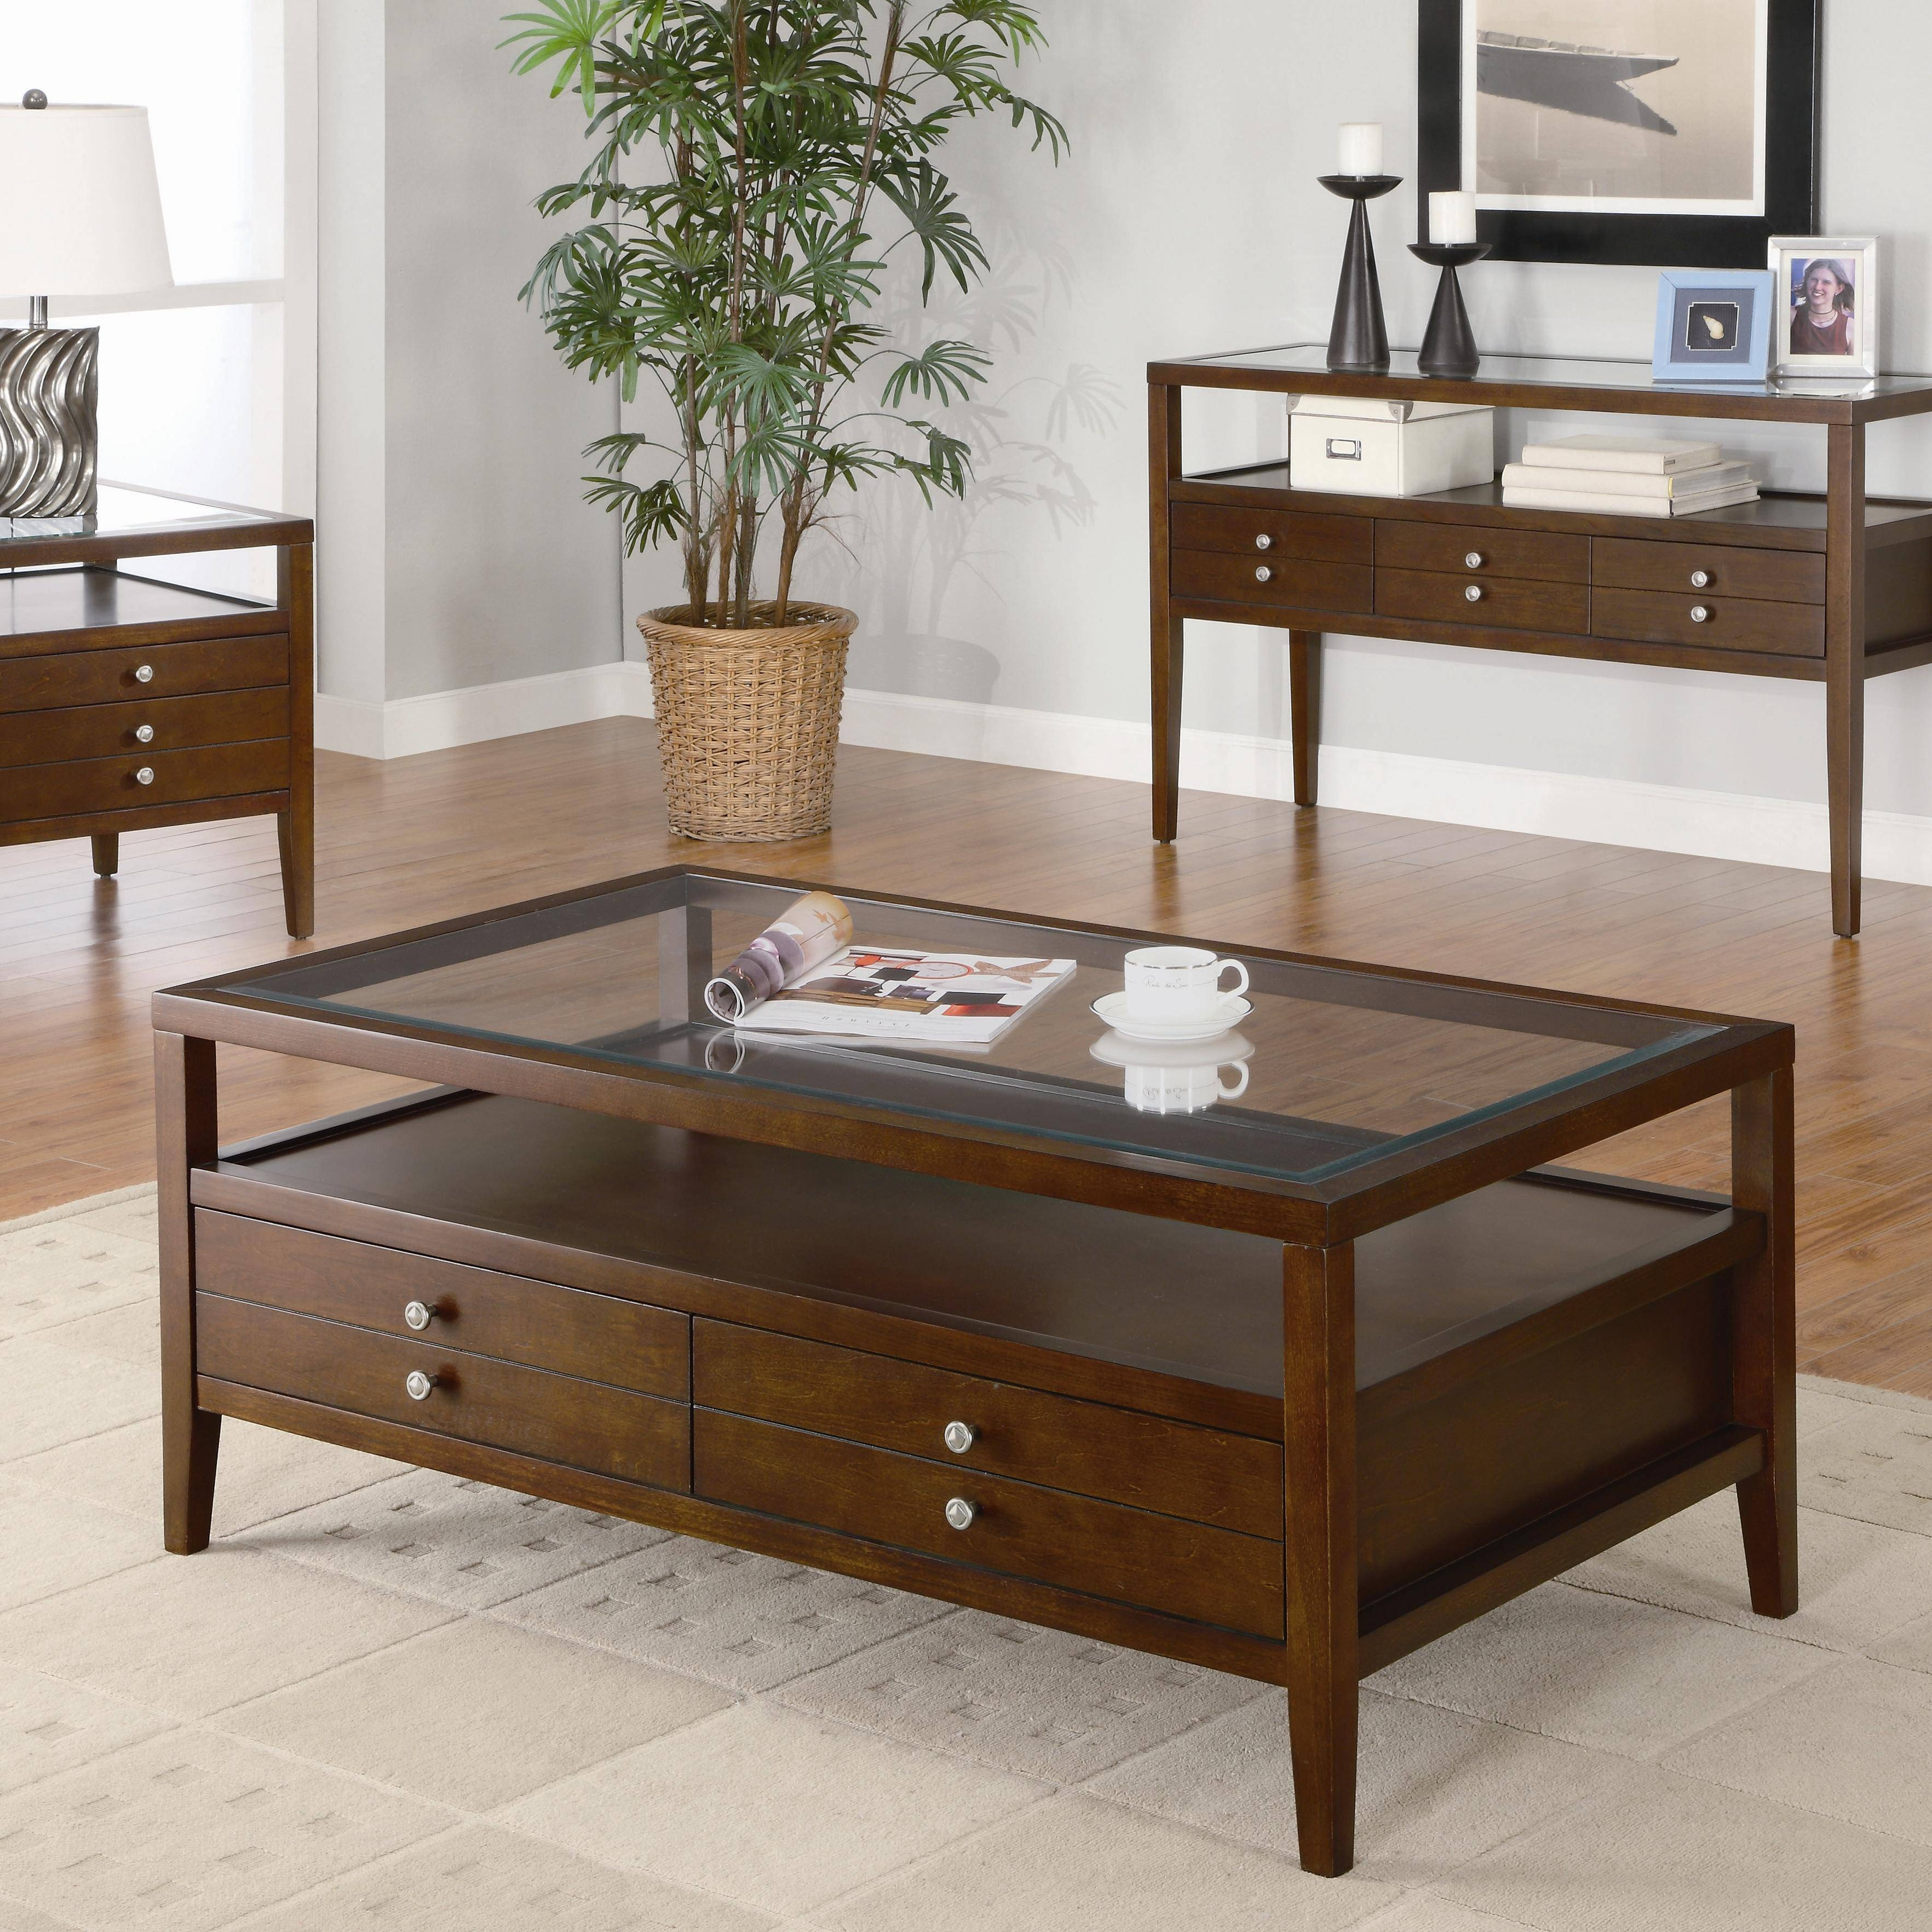 Square Coffee Table With Glass Top And Drawers | Coffee Tables in Square Dark Wood Coffee Tables (Image 25 of 30)